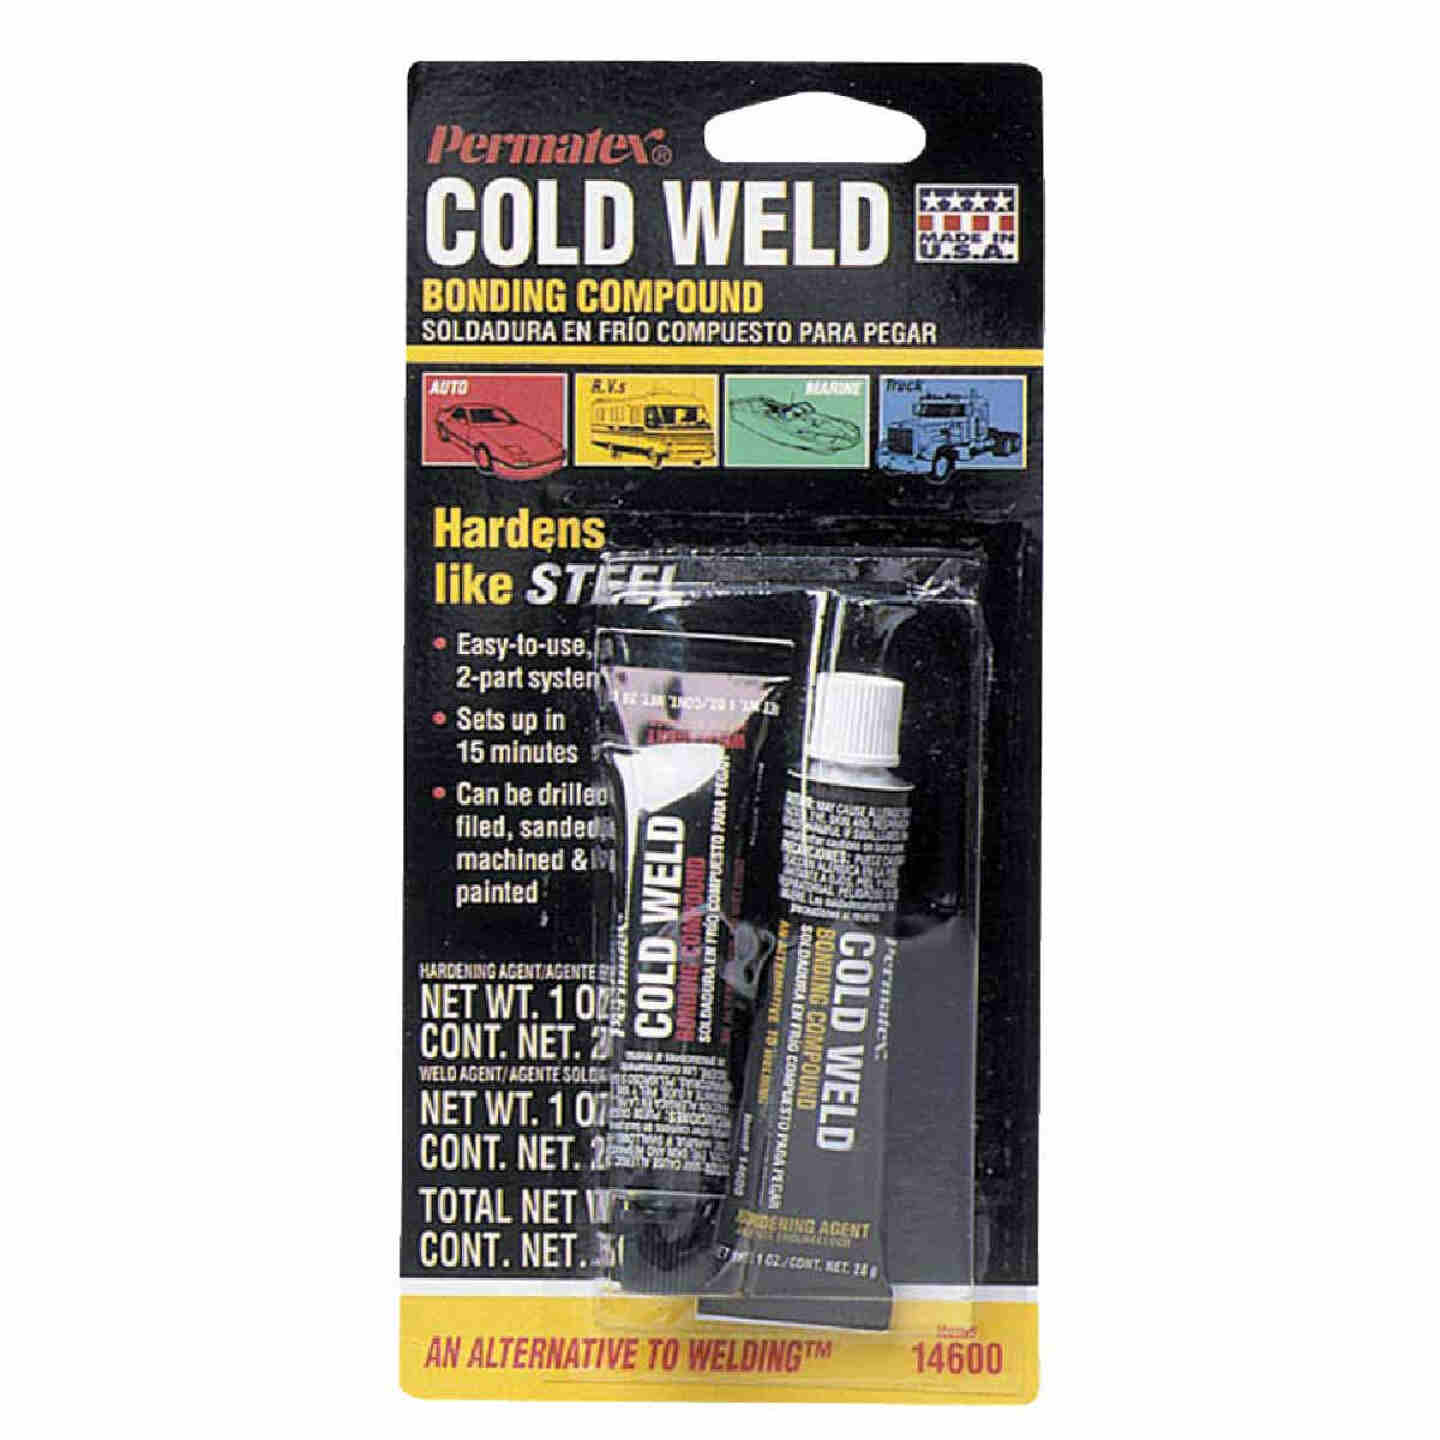 PERMATEX 1 Oz. Cold Weld Bonding Compound Epoxy Image 1